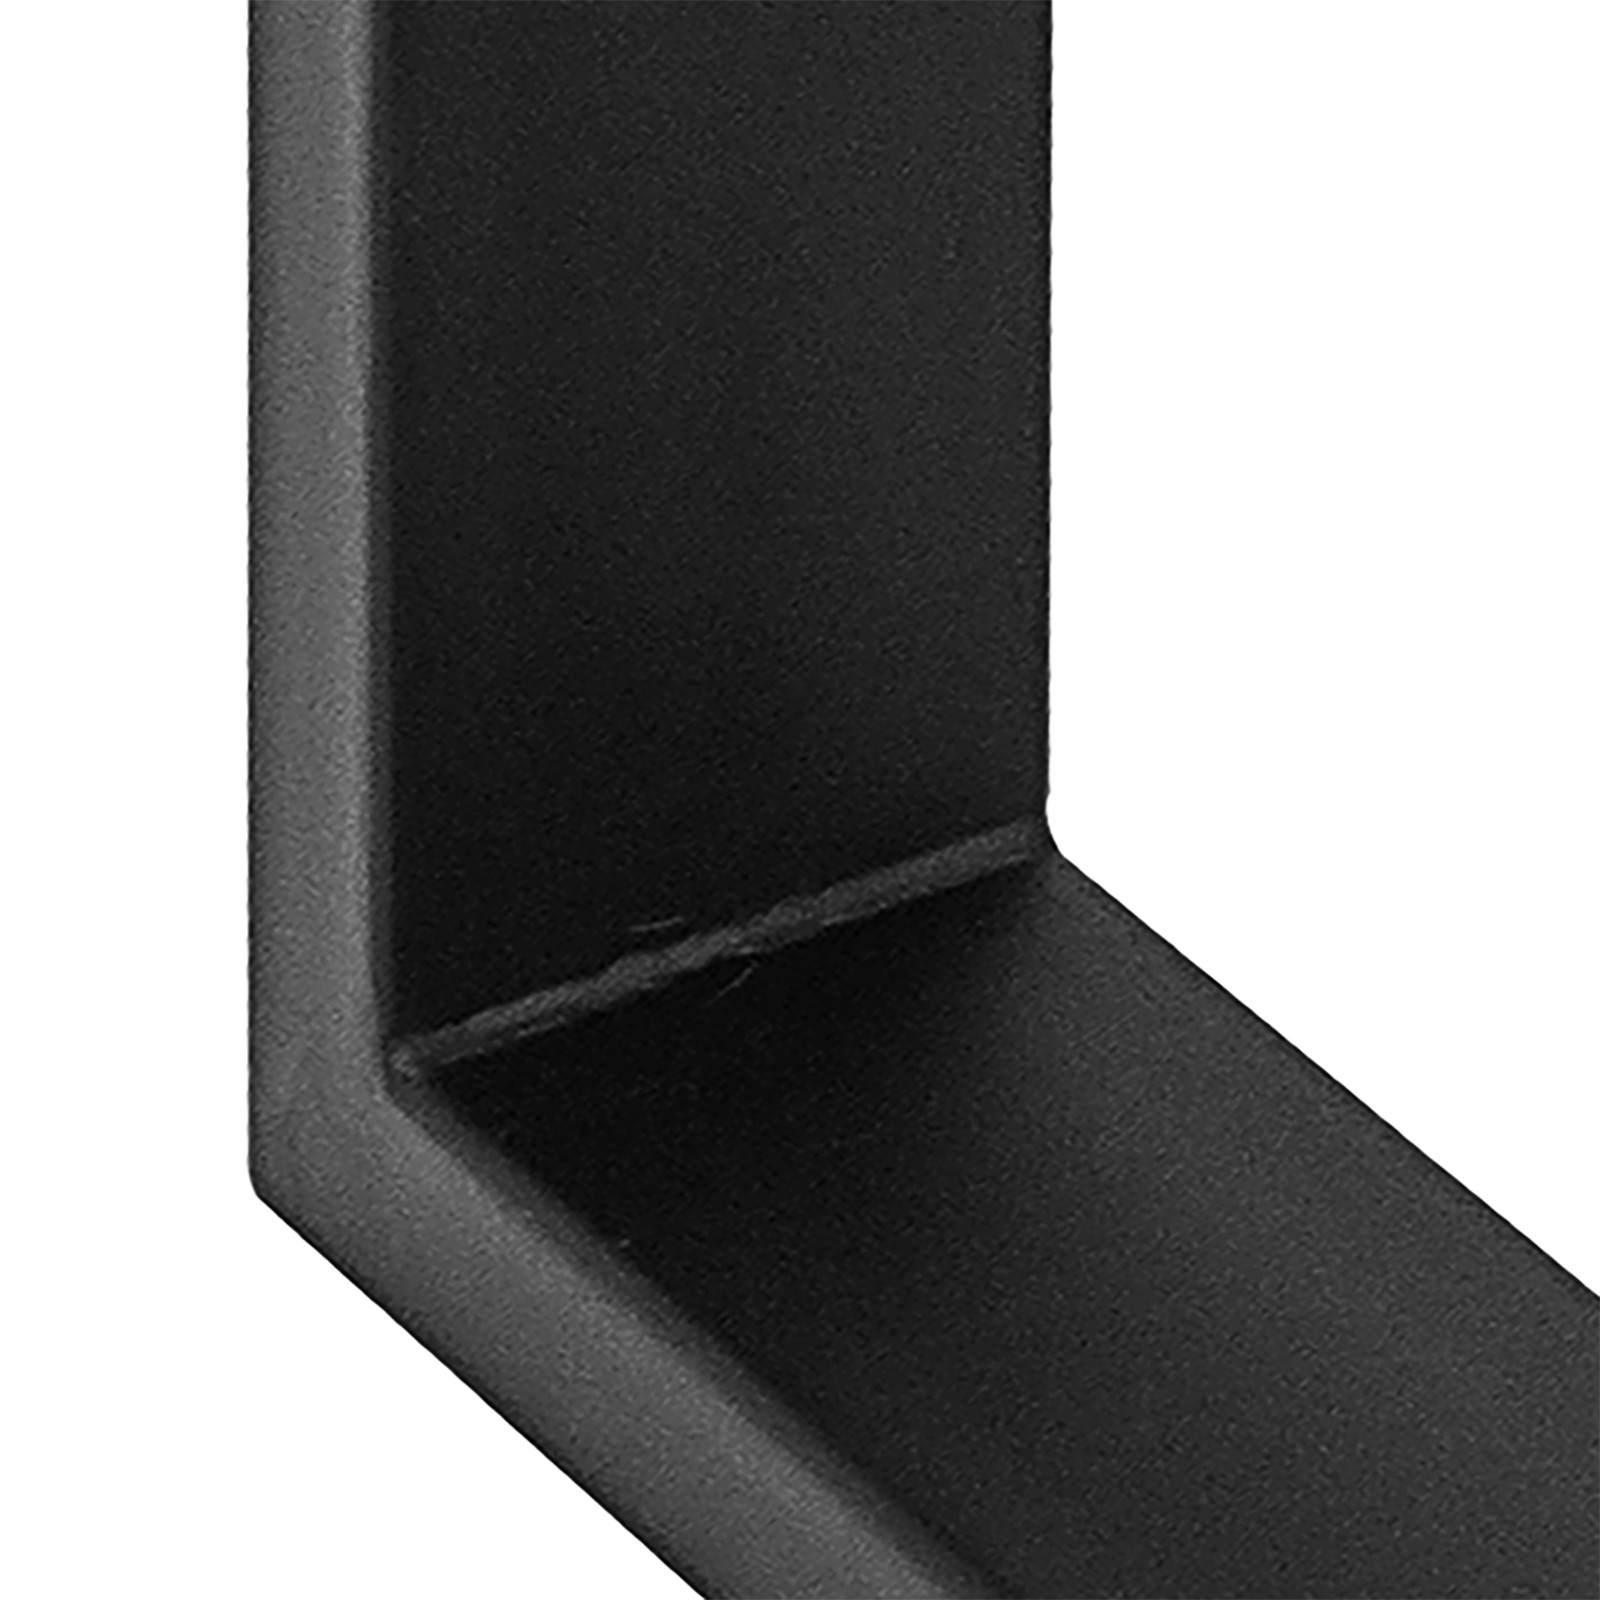 2X-Table-Legs-Black-Dining-Table-Leg-Heavy-Duty-Computer-Desk-Legs-Rectangle thumbnail 92